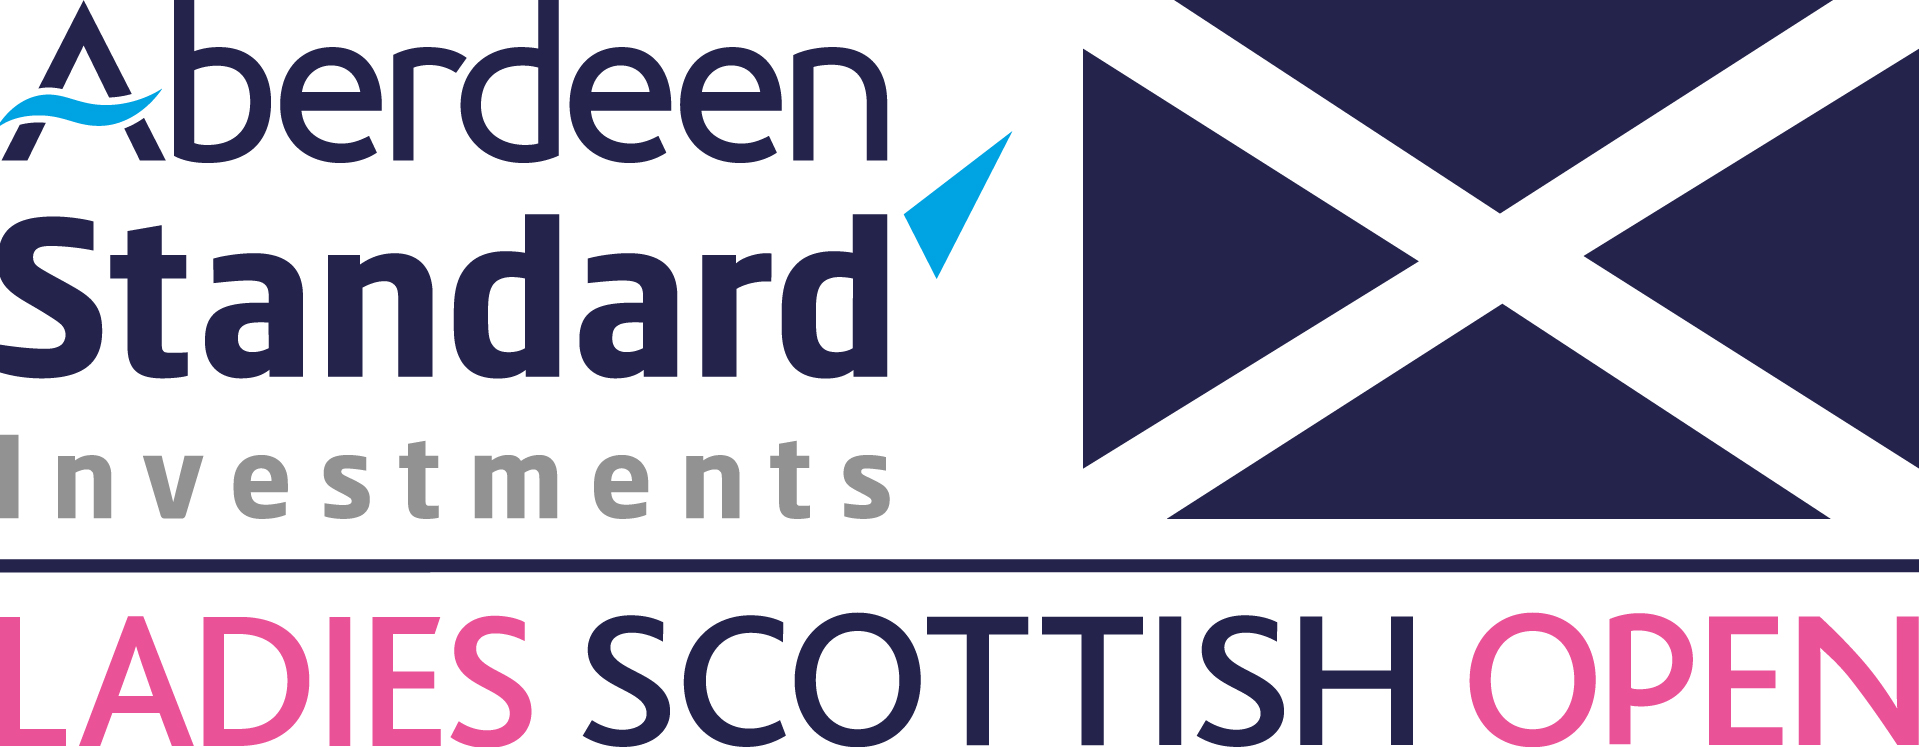 Image result for aberdeen standard investments ladies scottish open